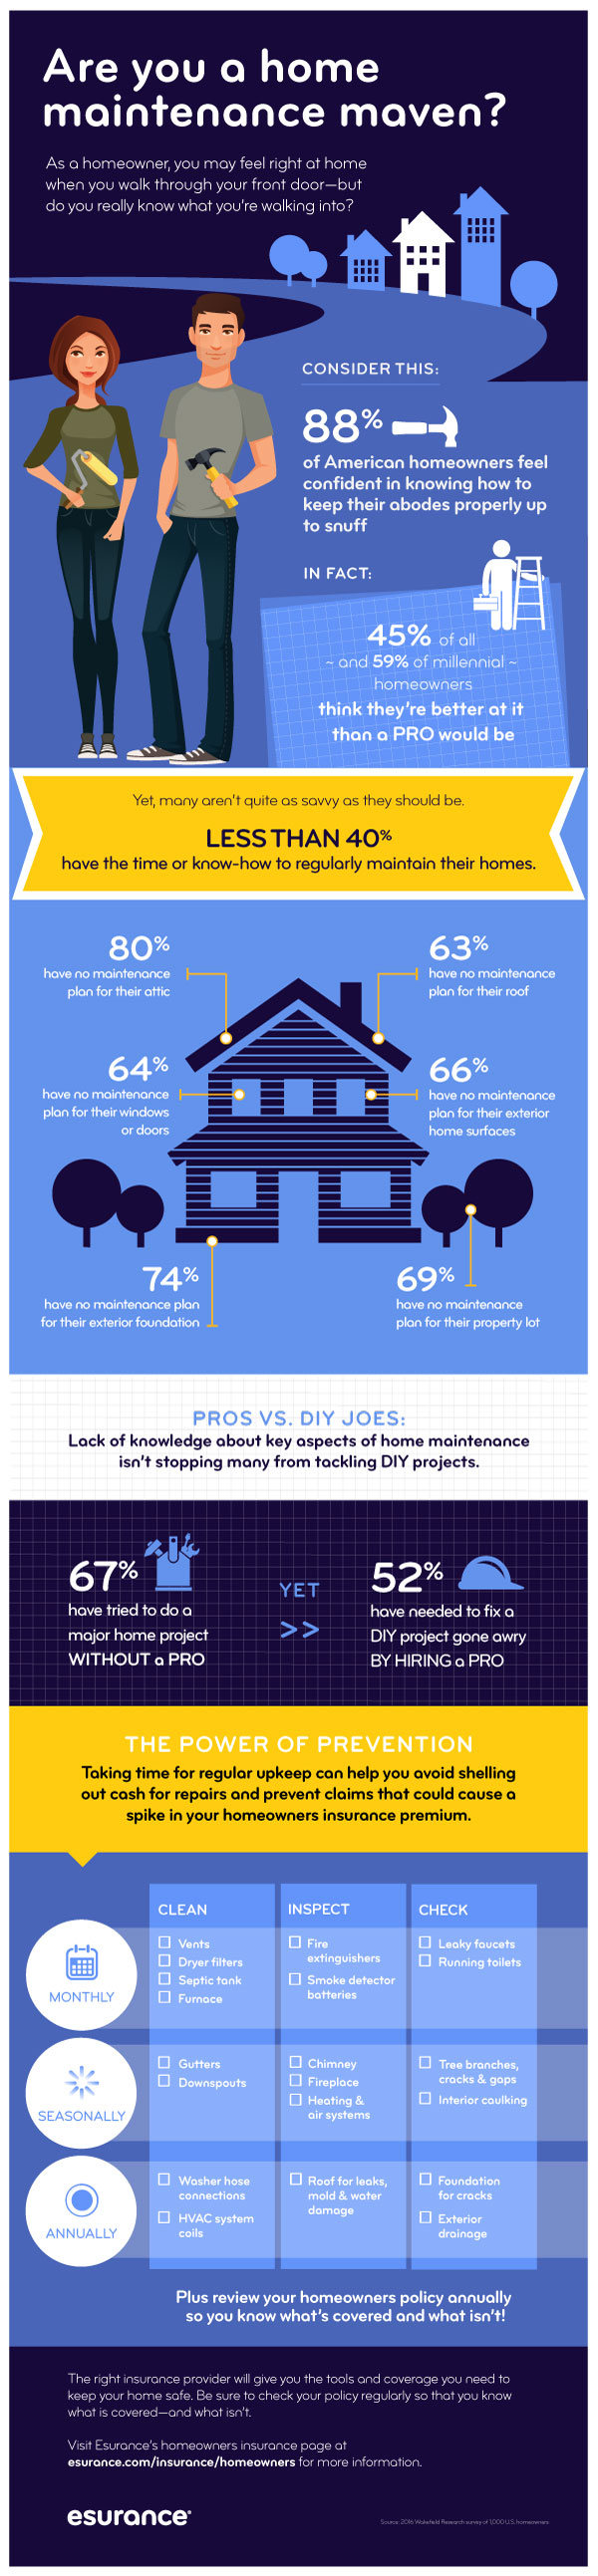 STC_Esurance_Infographic_Final_EIS-approved-600px